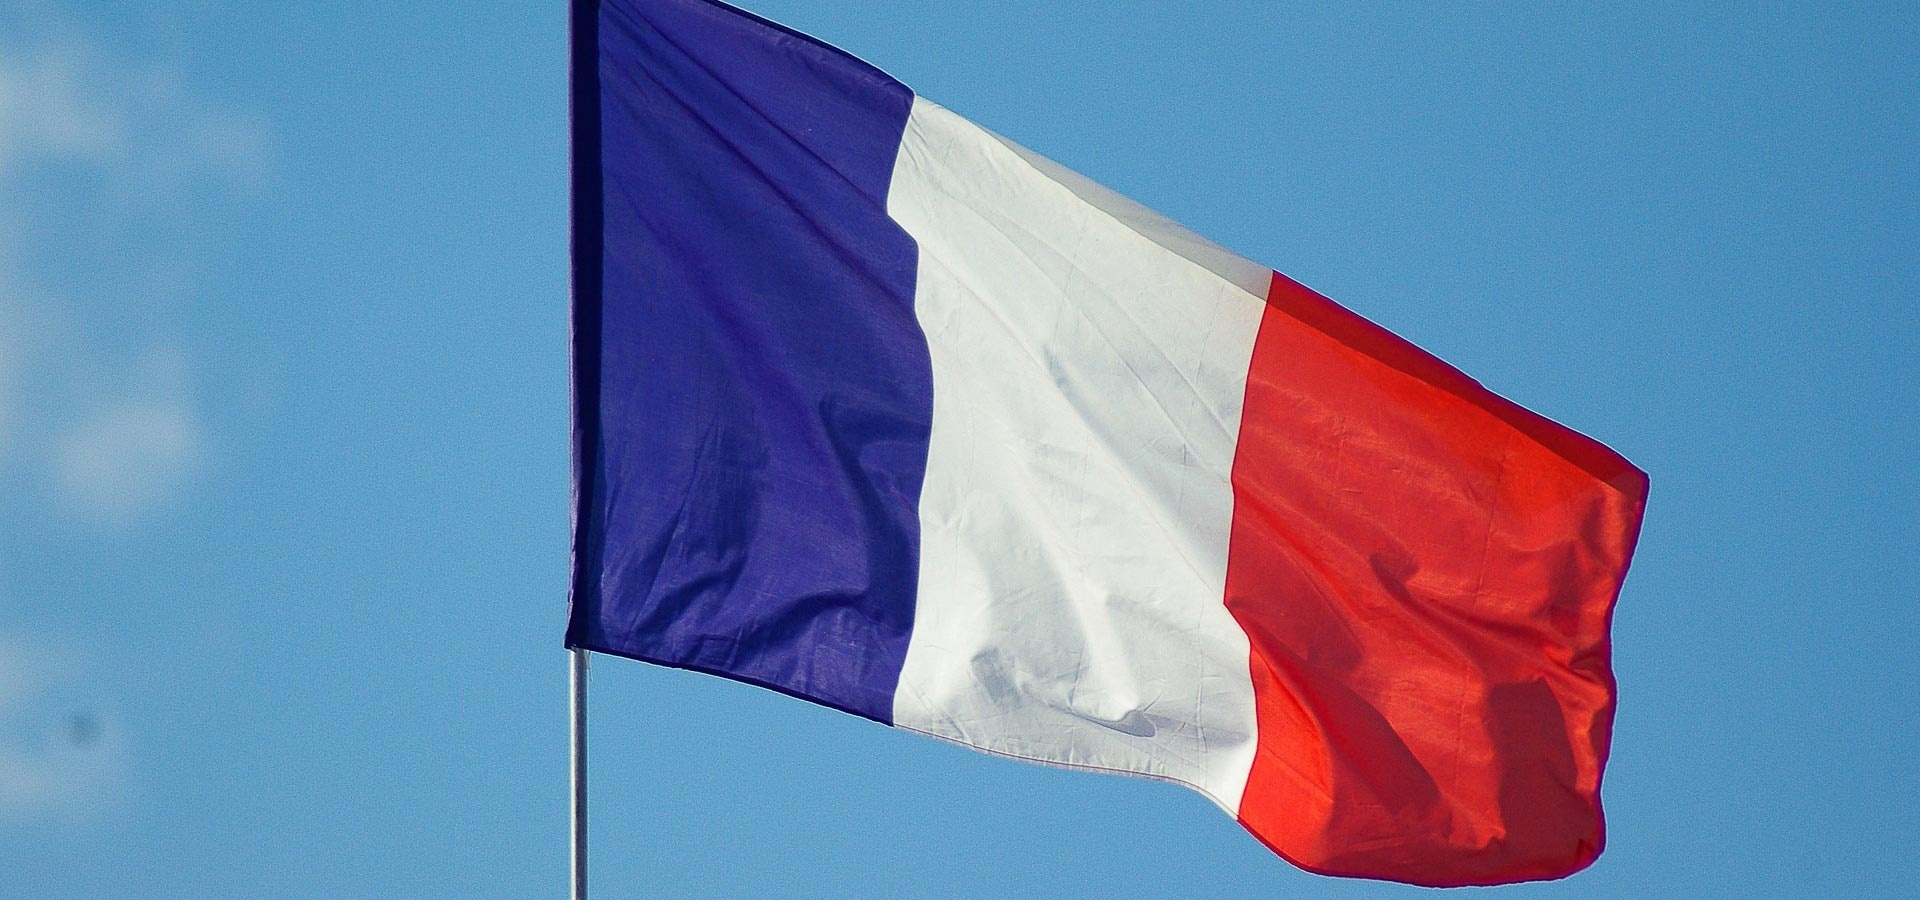 The recognition of French qualifications abroad - Q&As